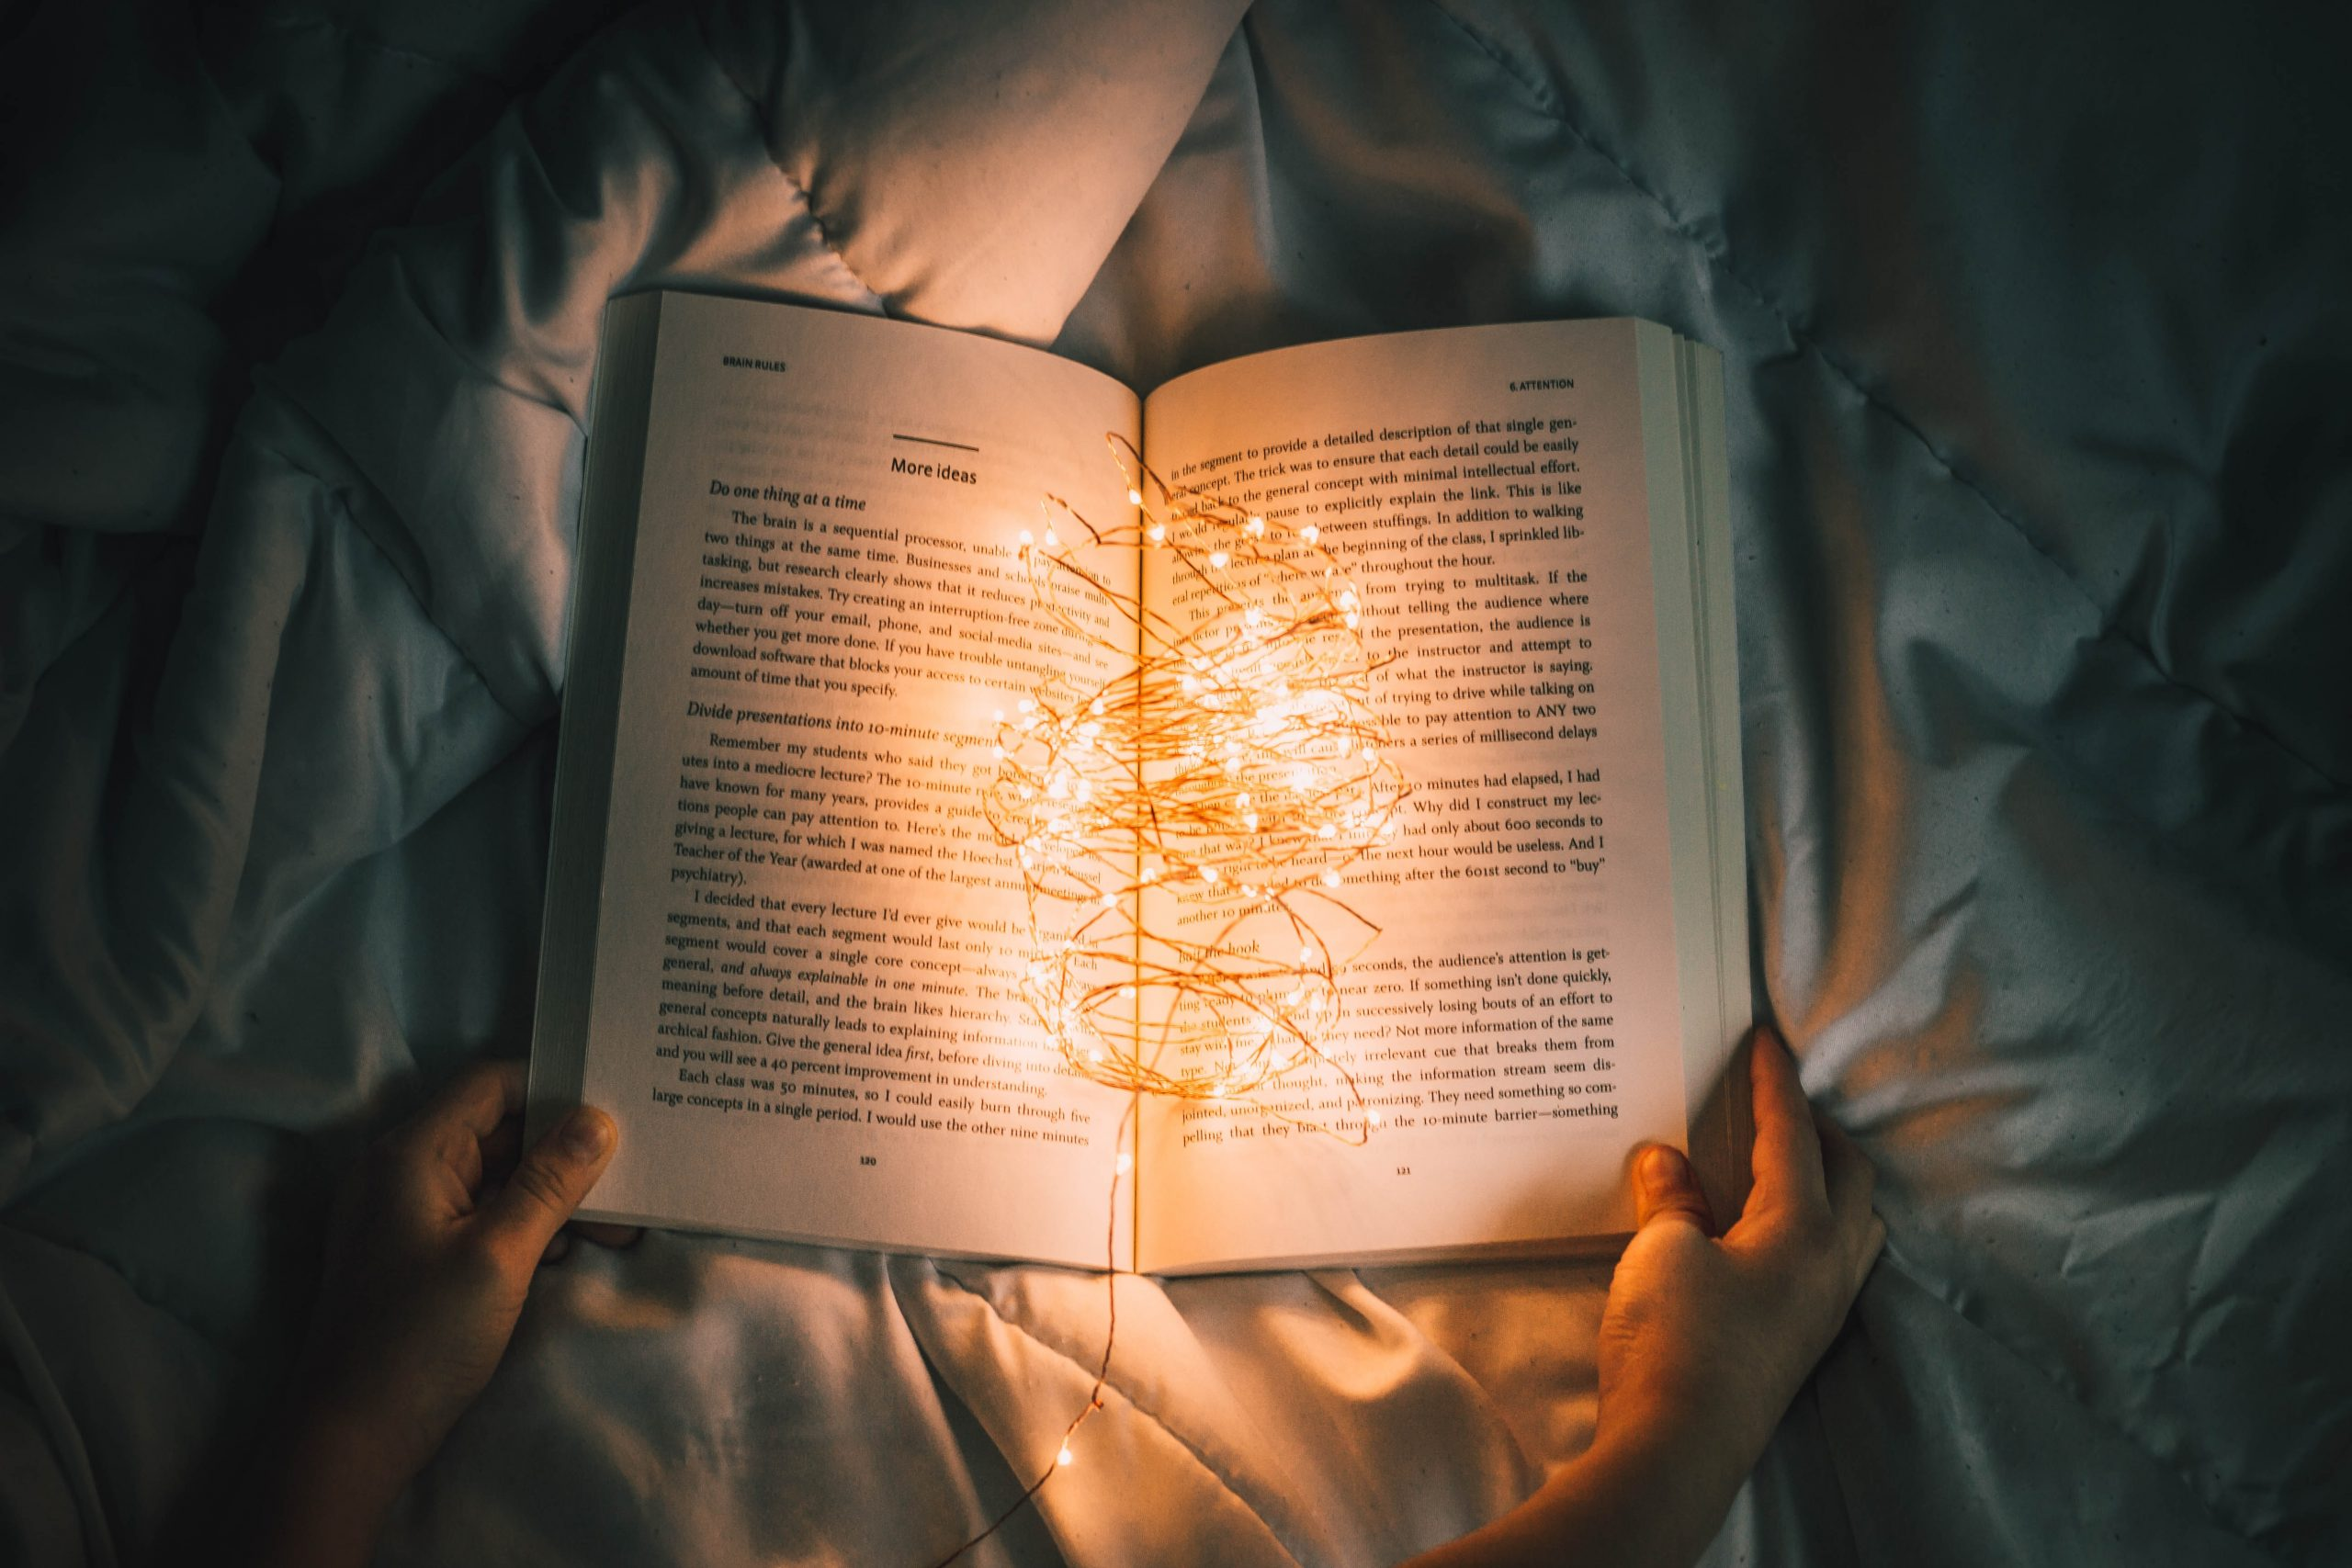 storybook lying open on a quilt covered in lights